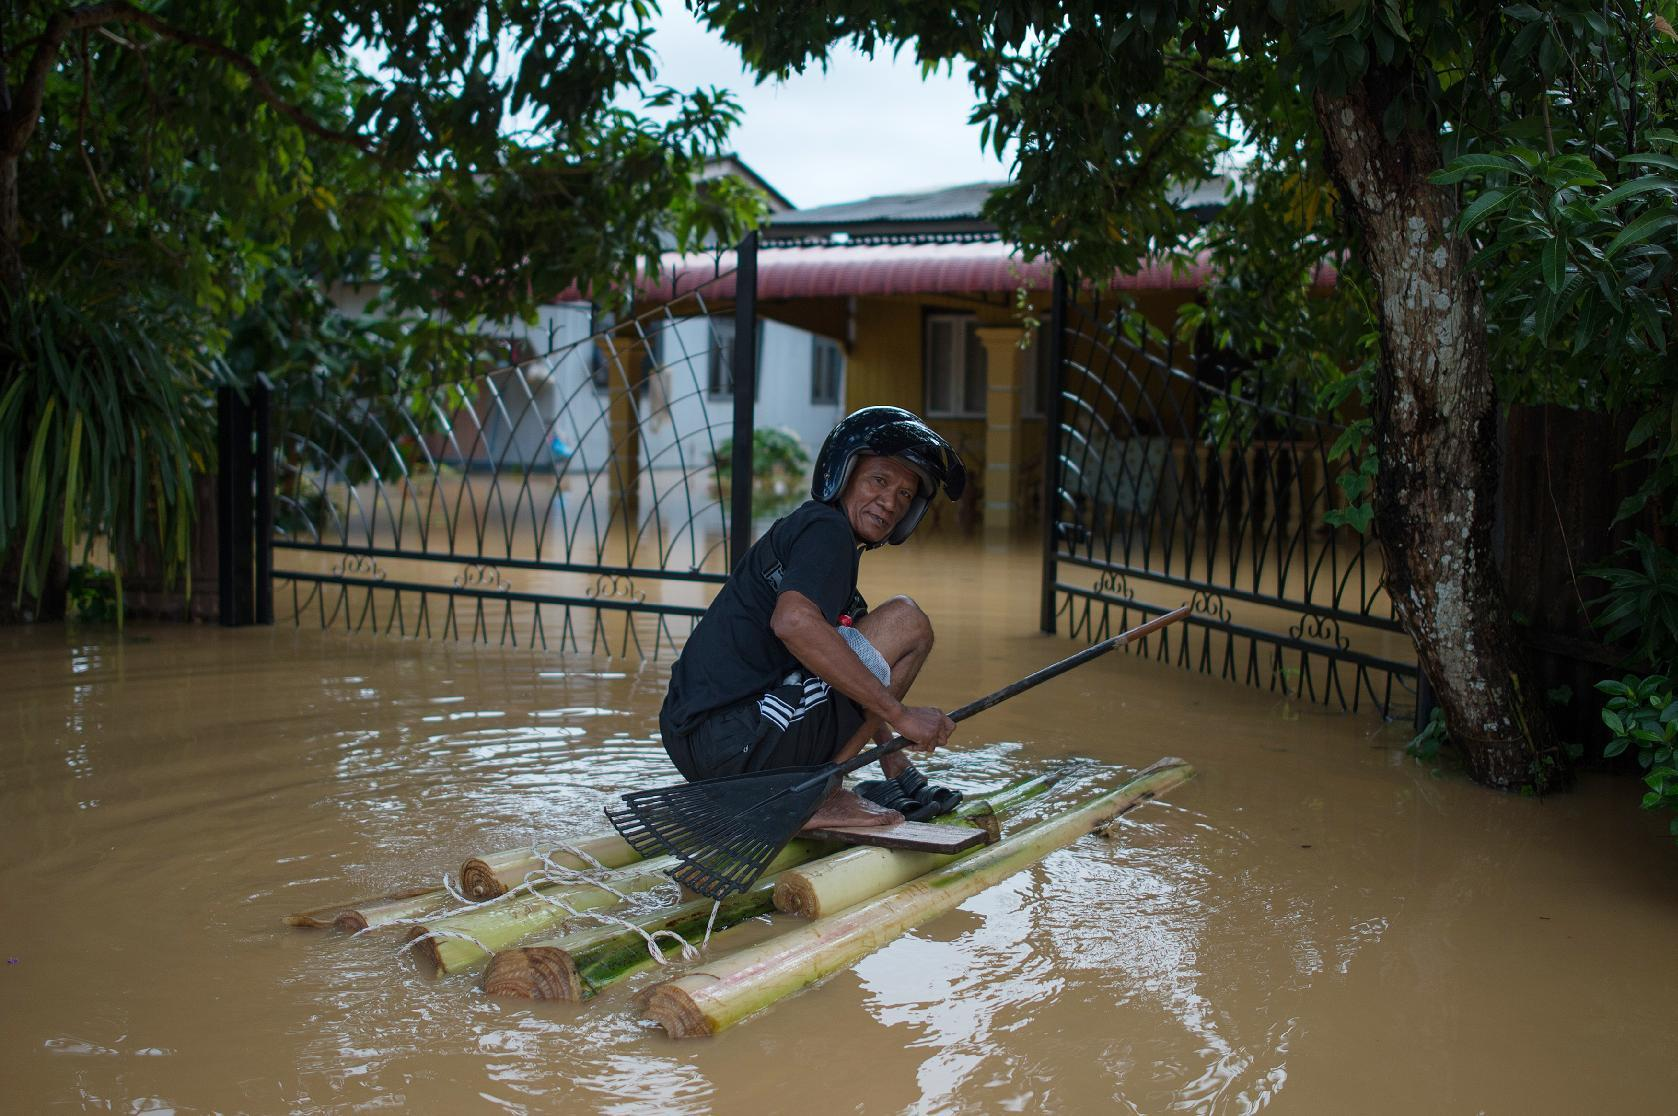 Rescuers struggle to reach flood victims in Malaysia as anger mounts